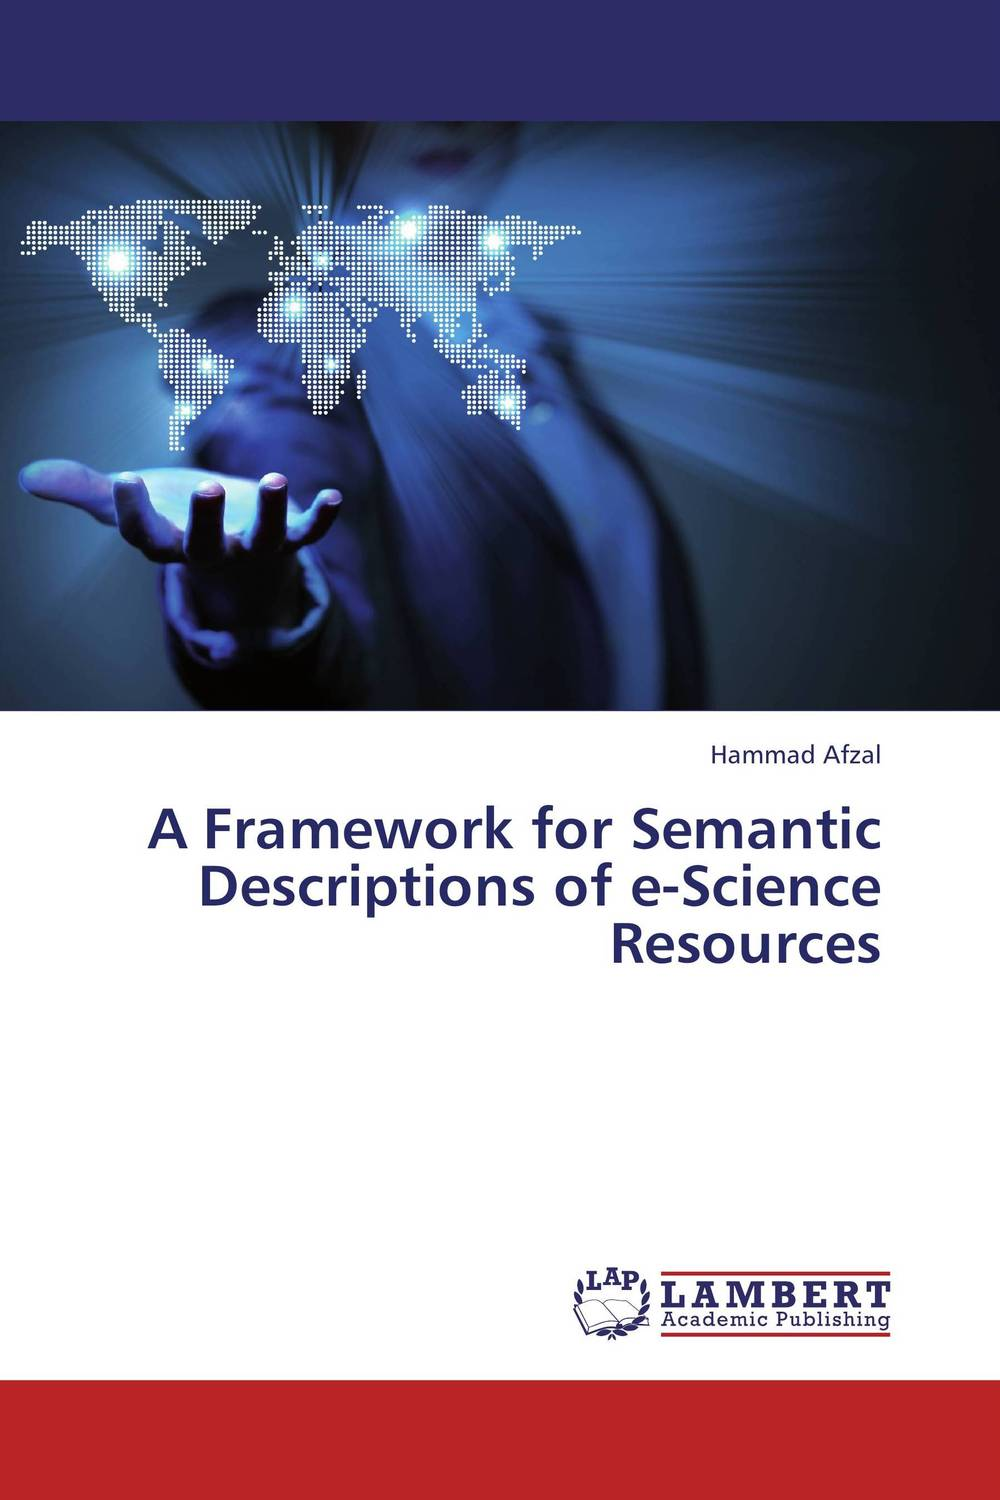 A Framework for Semantic Descriptions of e-Science Resources